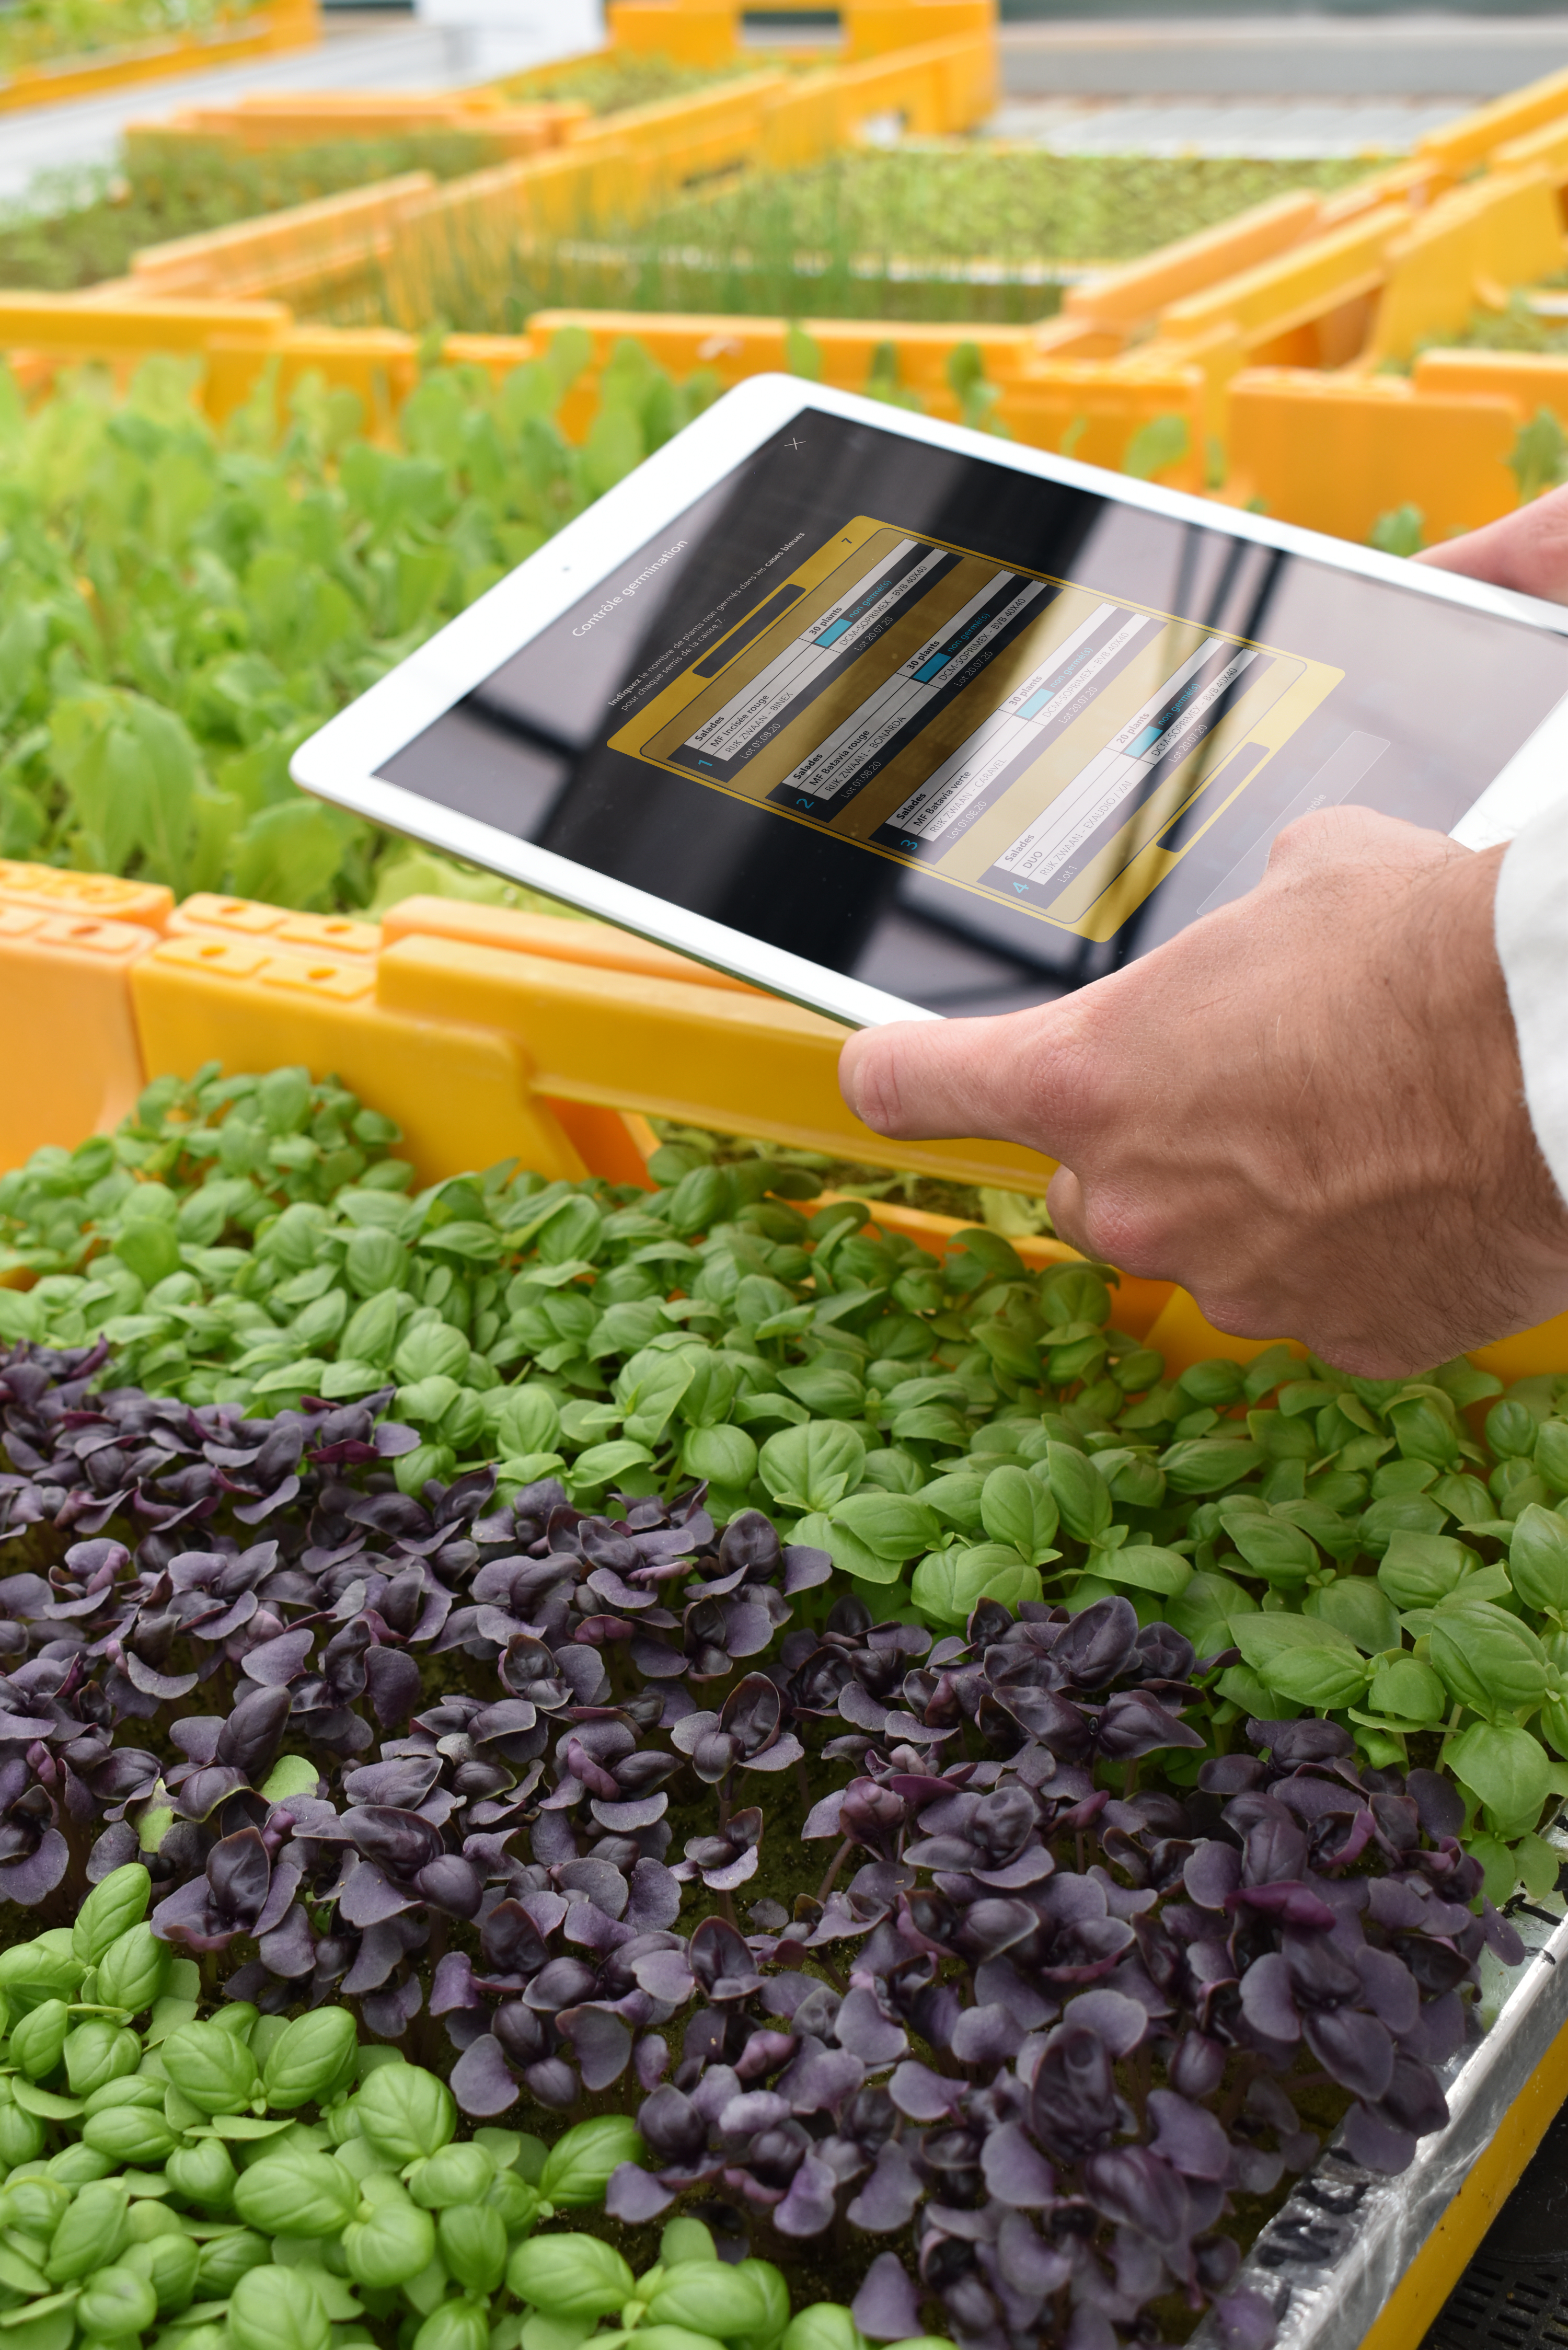 CleanGreens basil management application sustainable agriculture premium quality